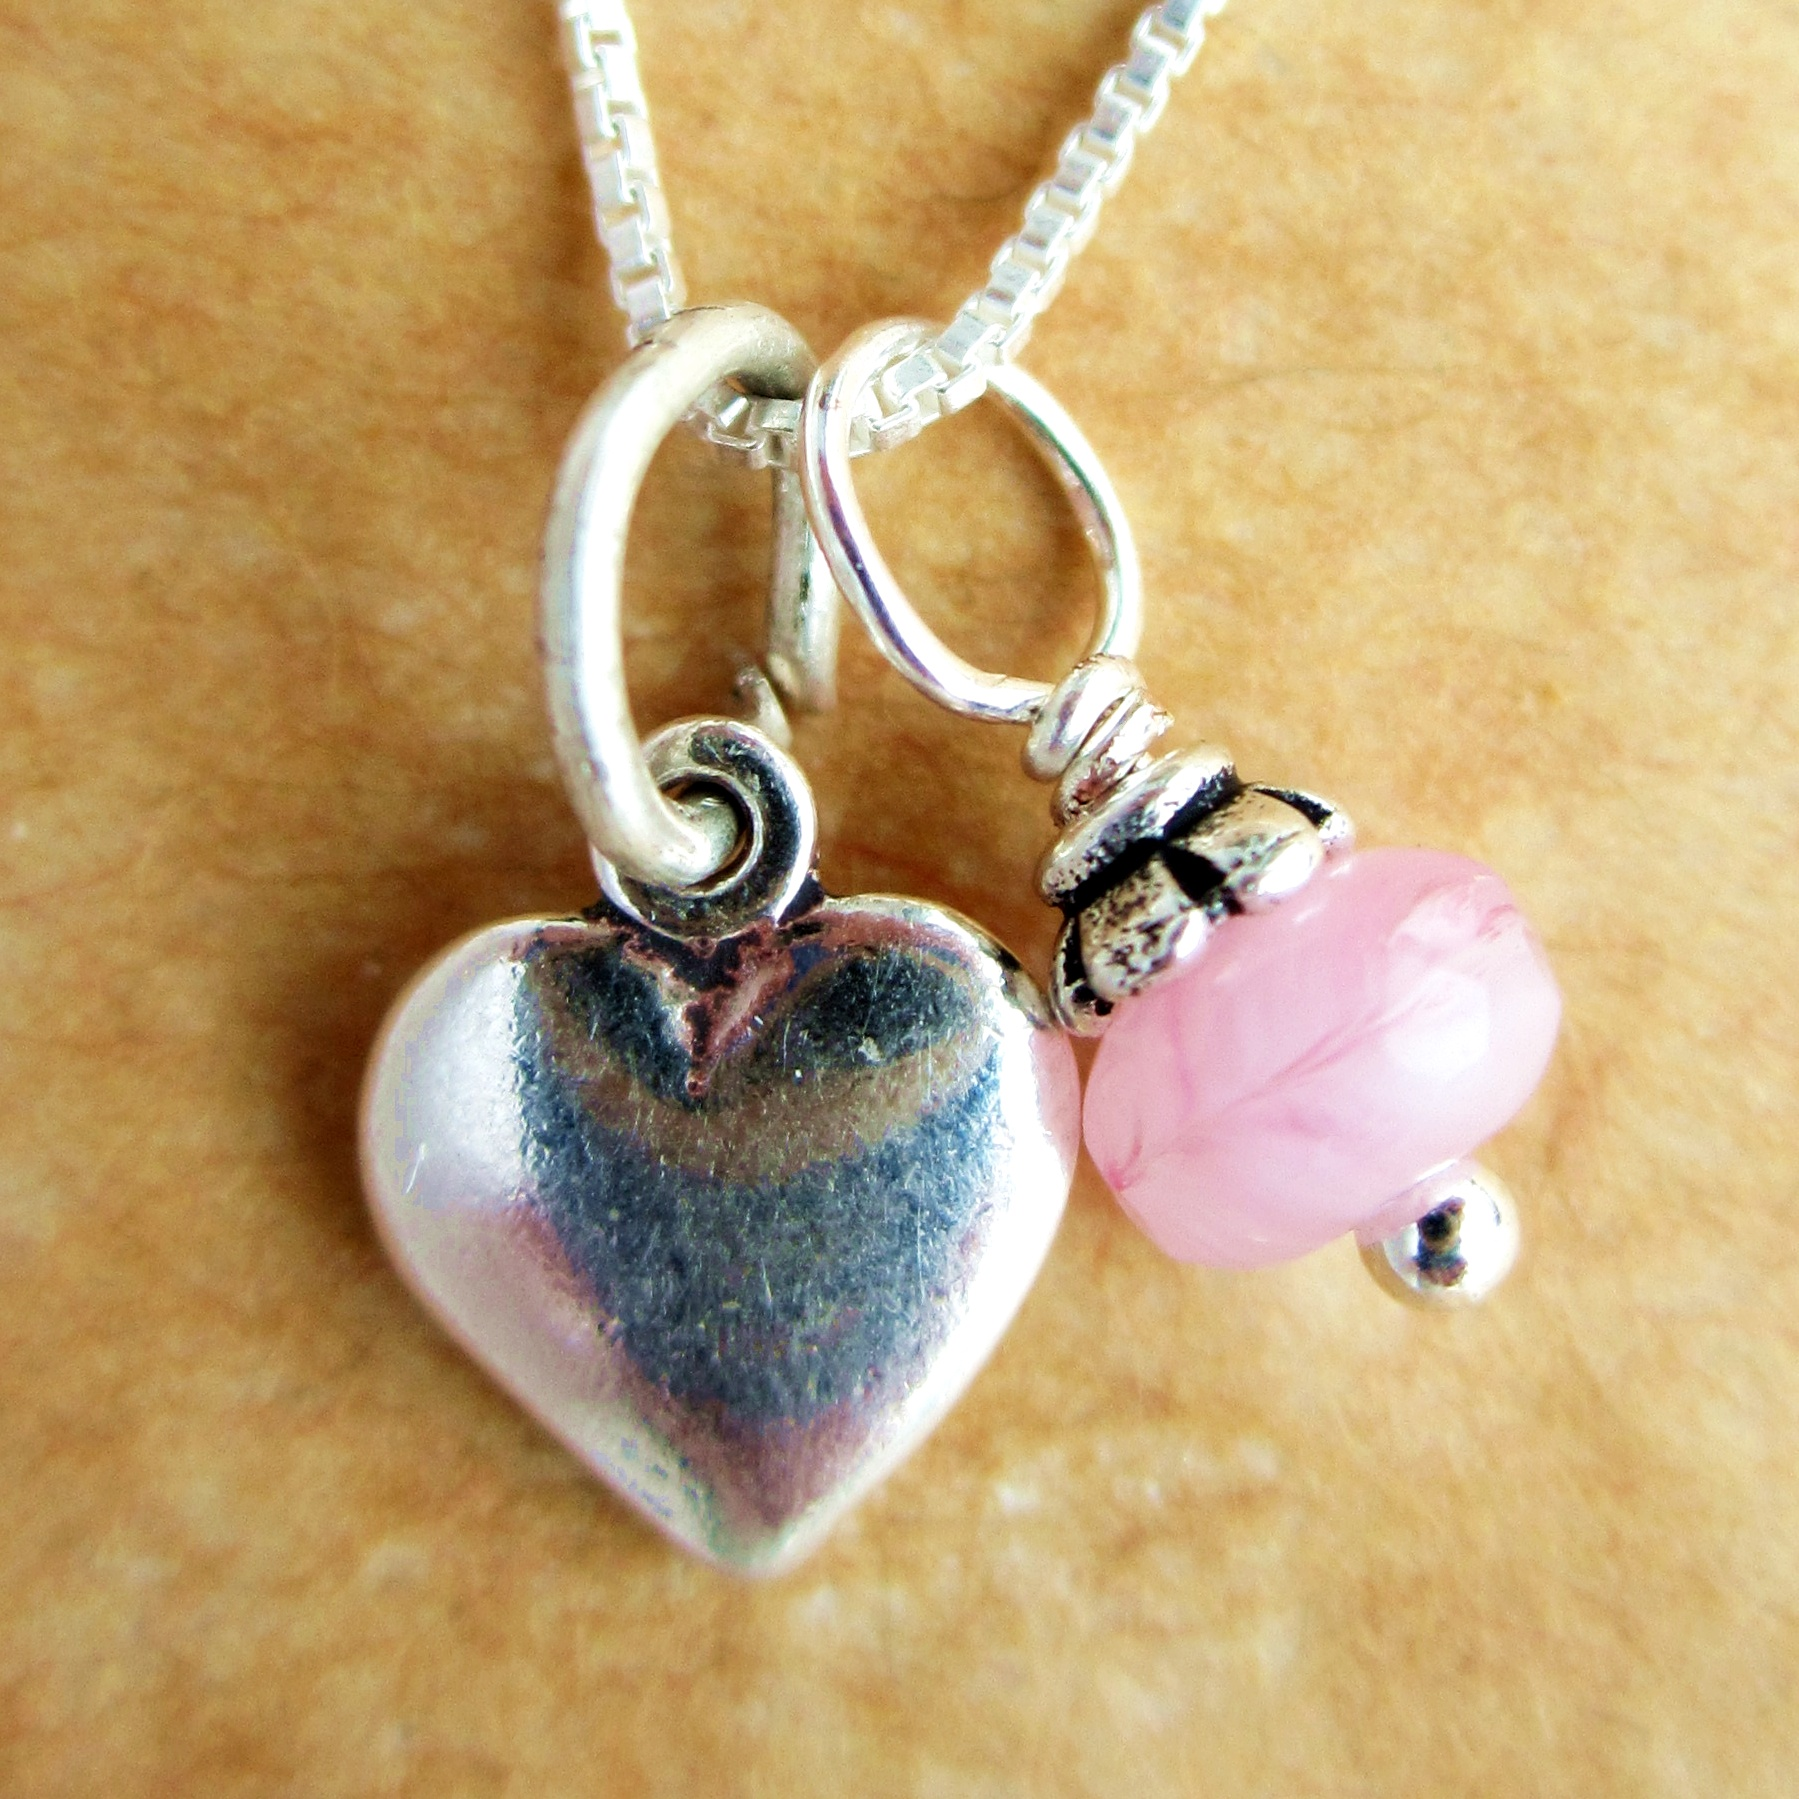 Heart Mini Pink Swirl Glass Sterling Silver Necklace